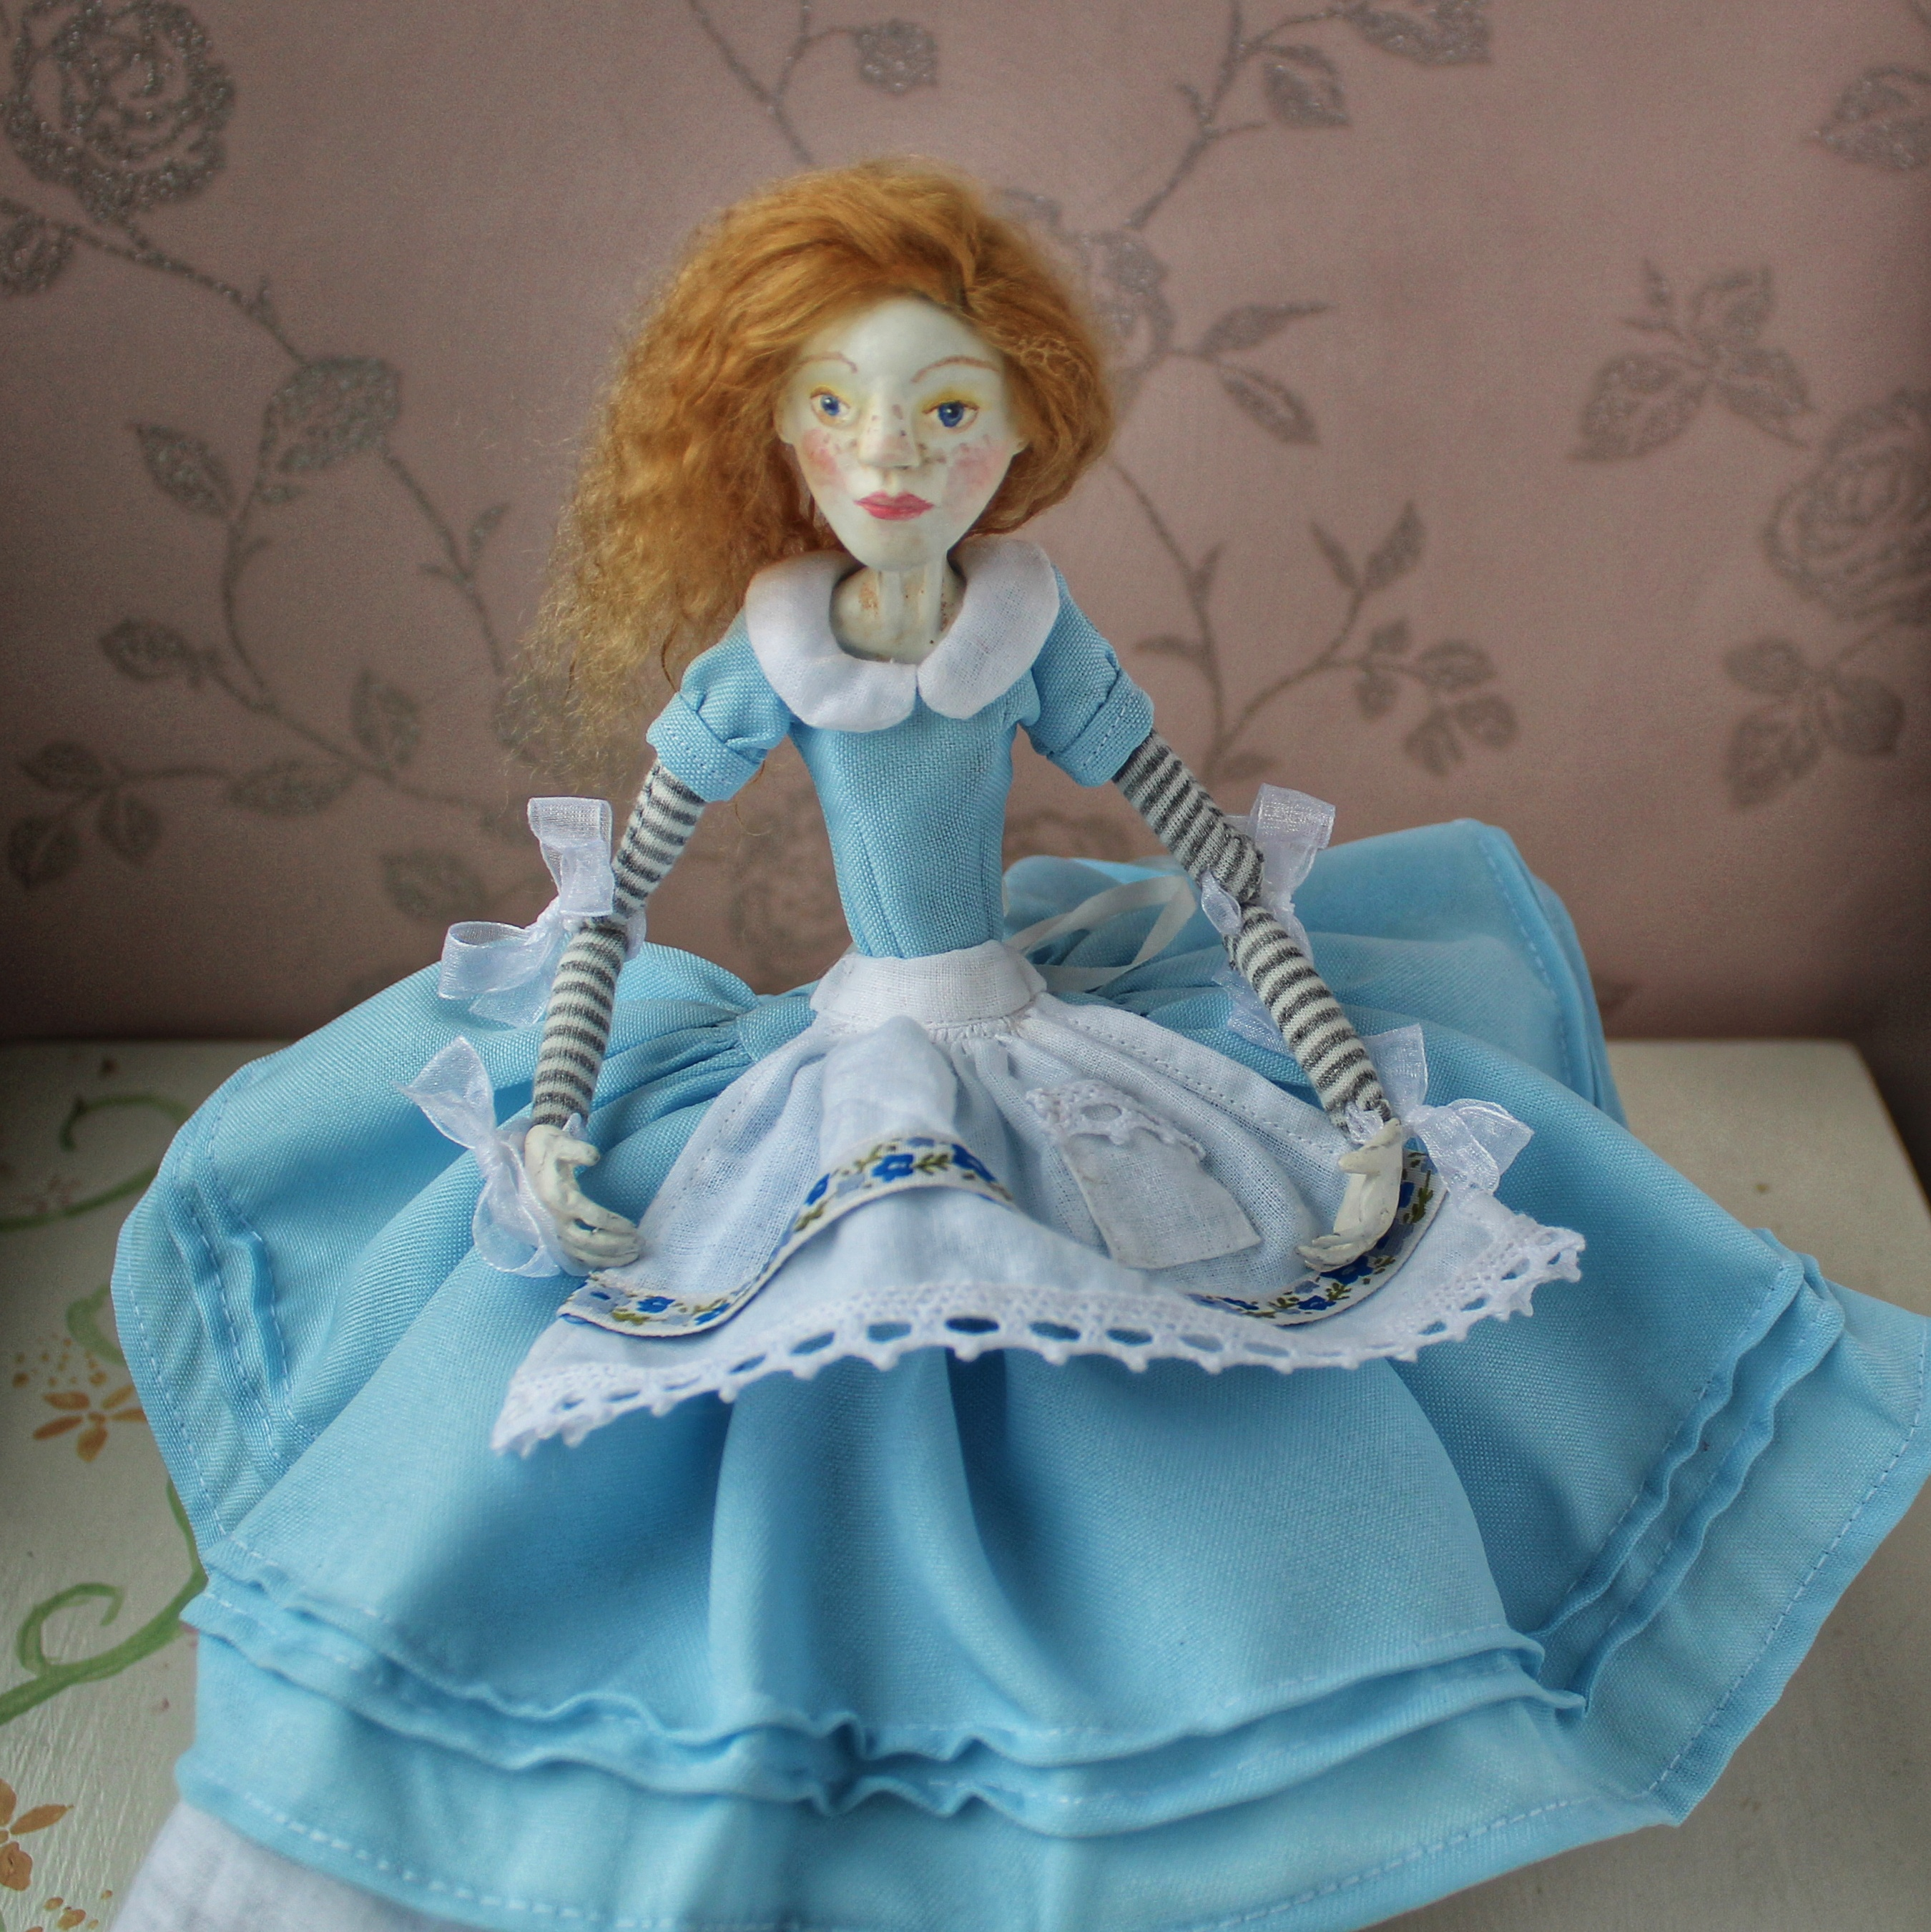 Alice in wonderland Art Doll.jpg